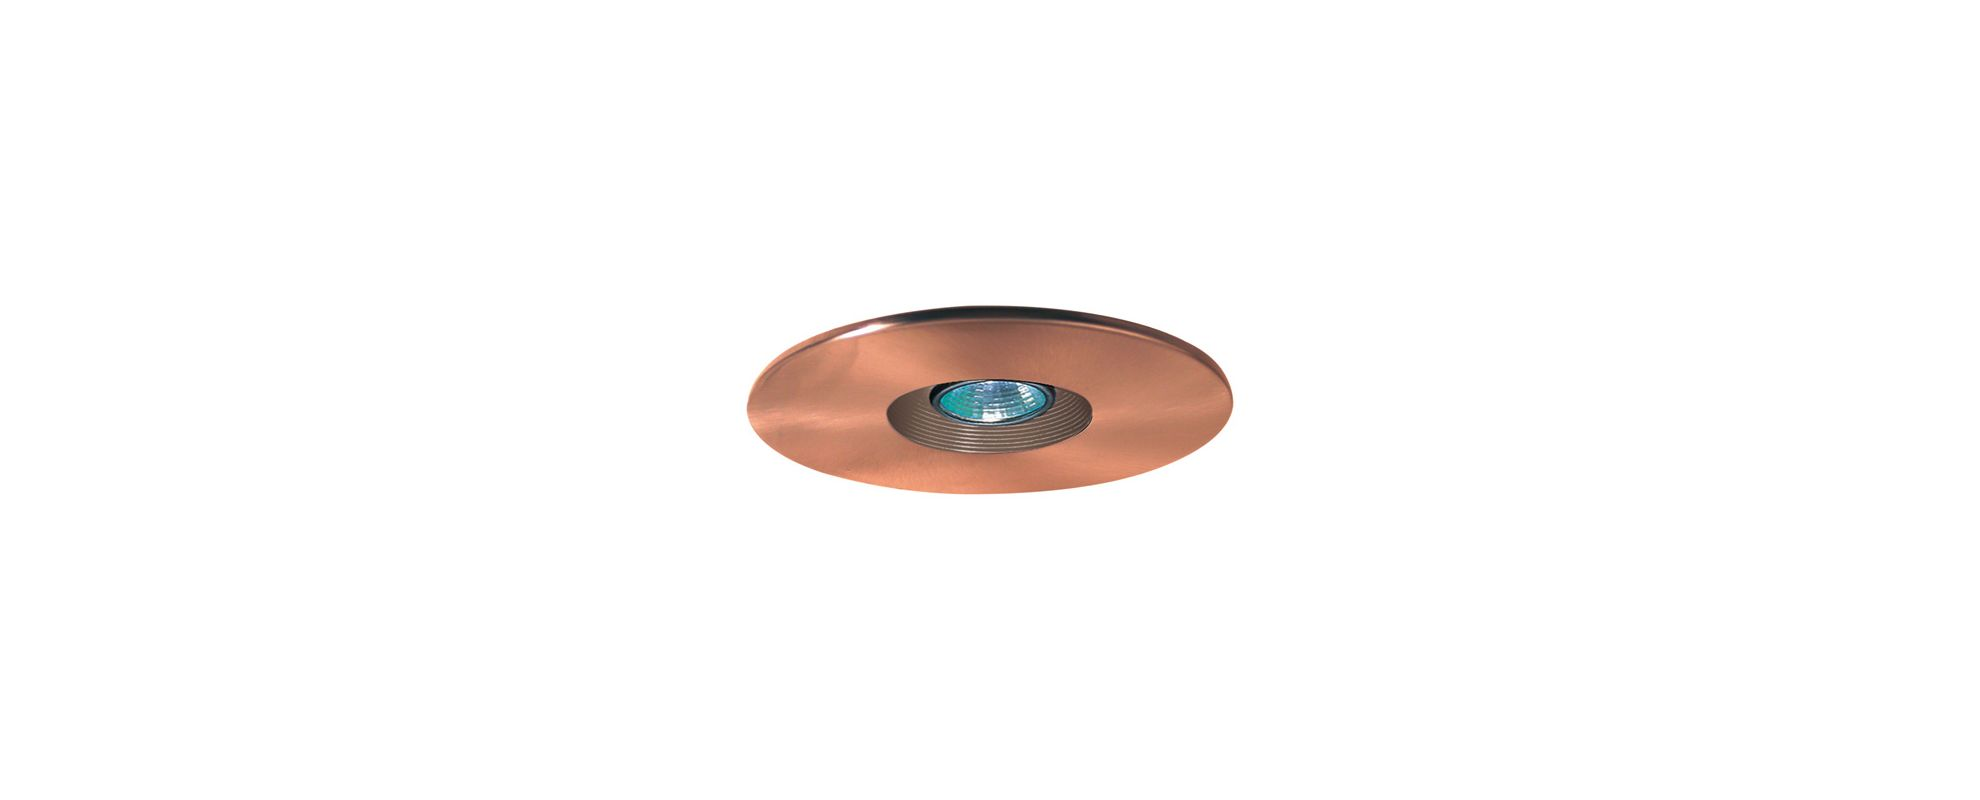 "Elco EL2533 6"" Low-Voltage Adjustable Baffle Trim Copper Recessed"